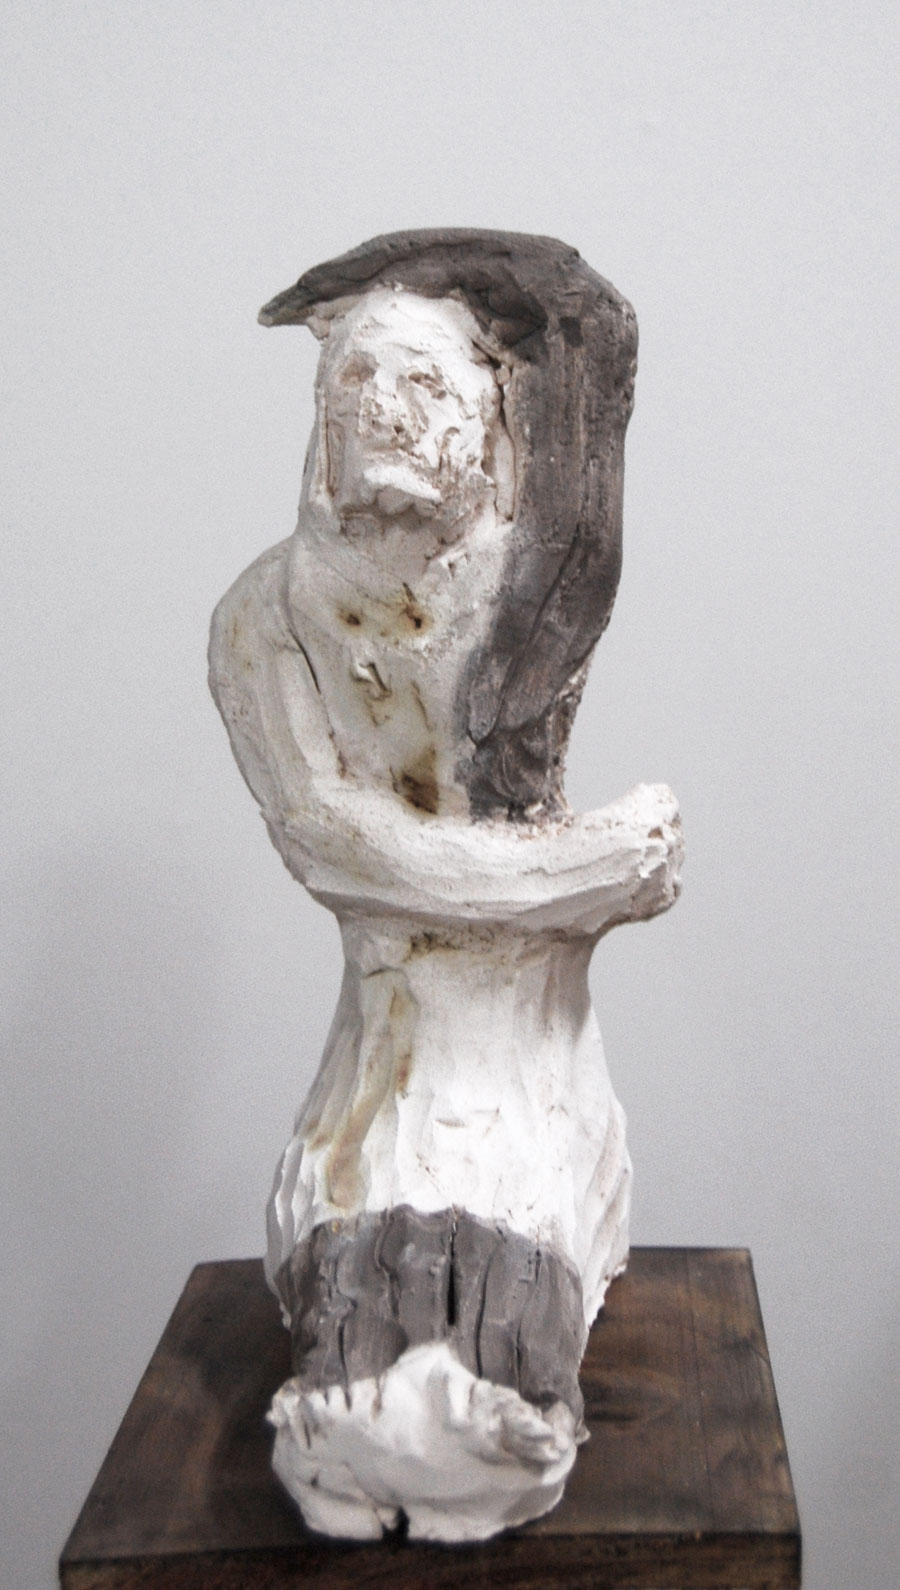 Justin Williams,  Untitled , 2014, stoneware ceramic, 25 x 22 x 10cm